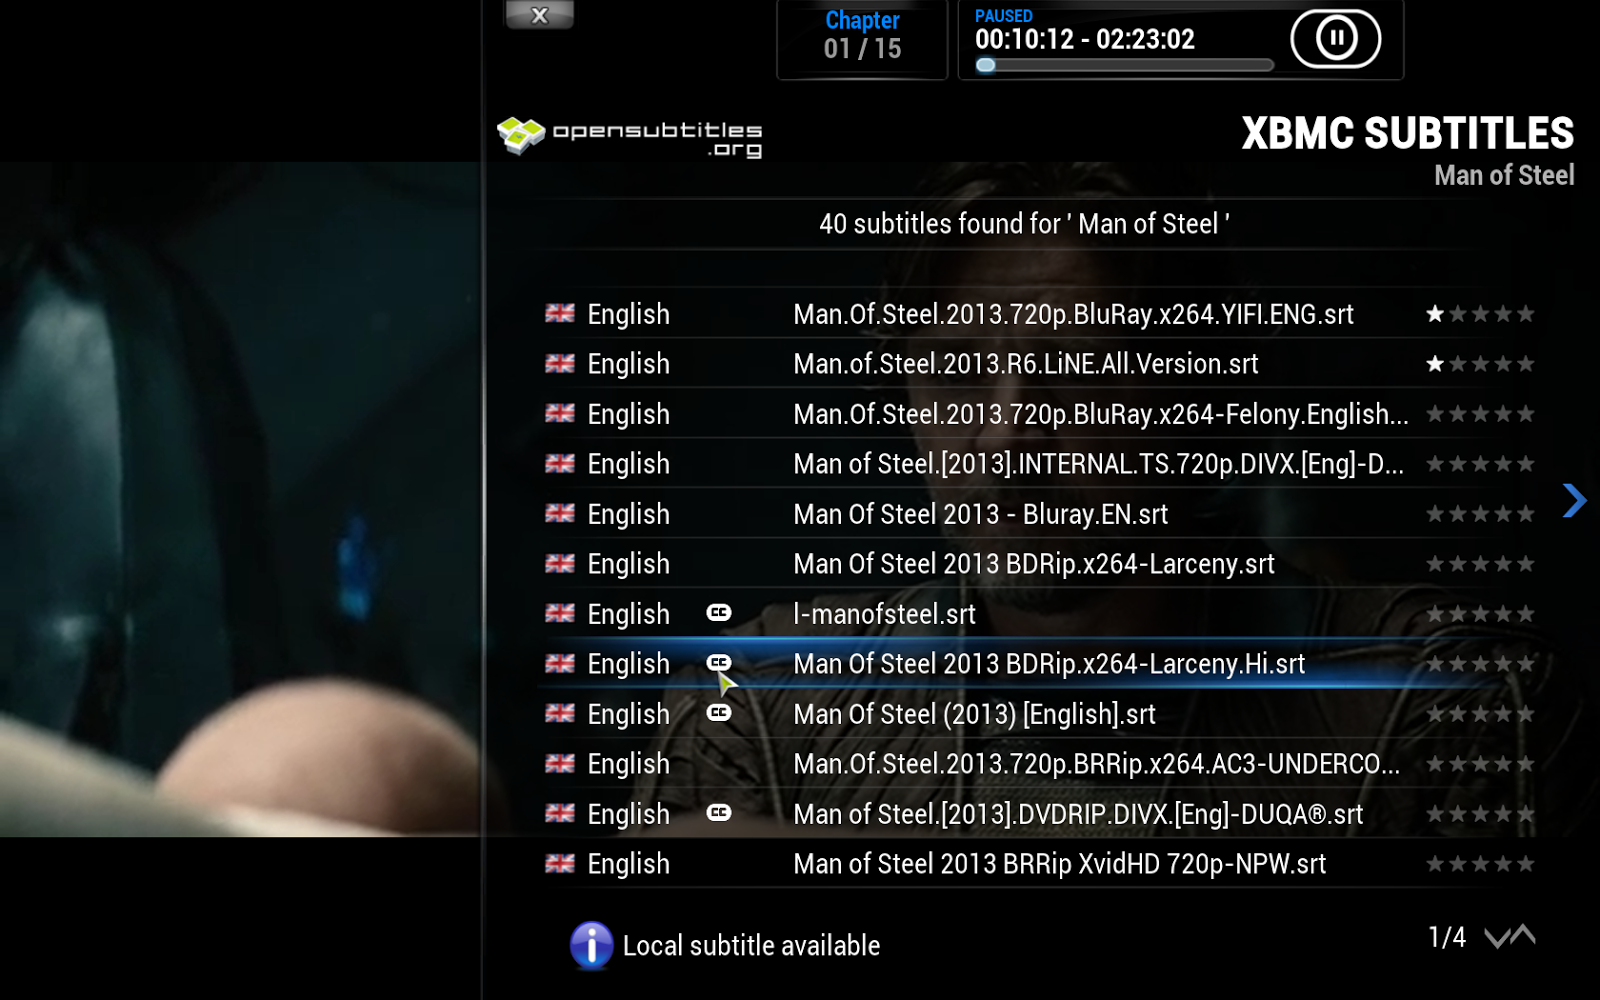 i XBMC, KODI ,watch movies, TV-shows and more : I XBMC, how to